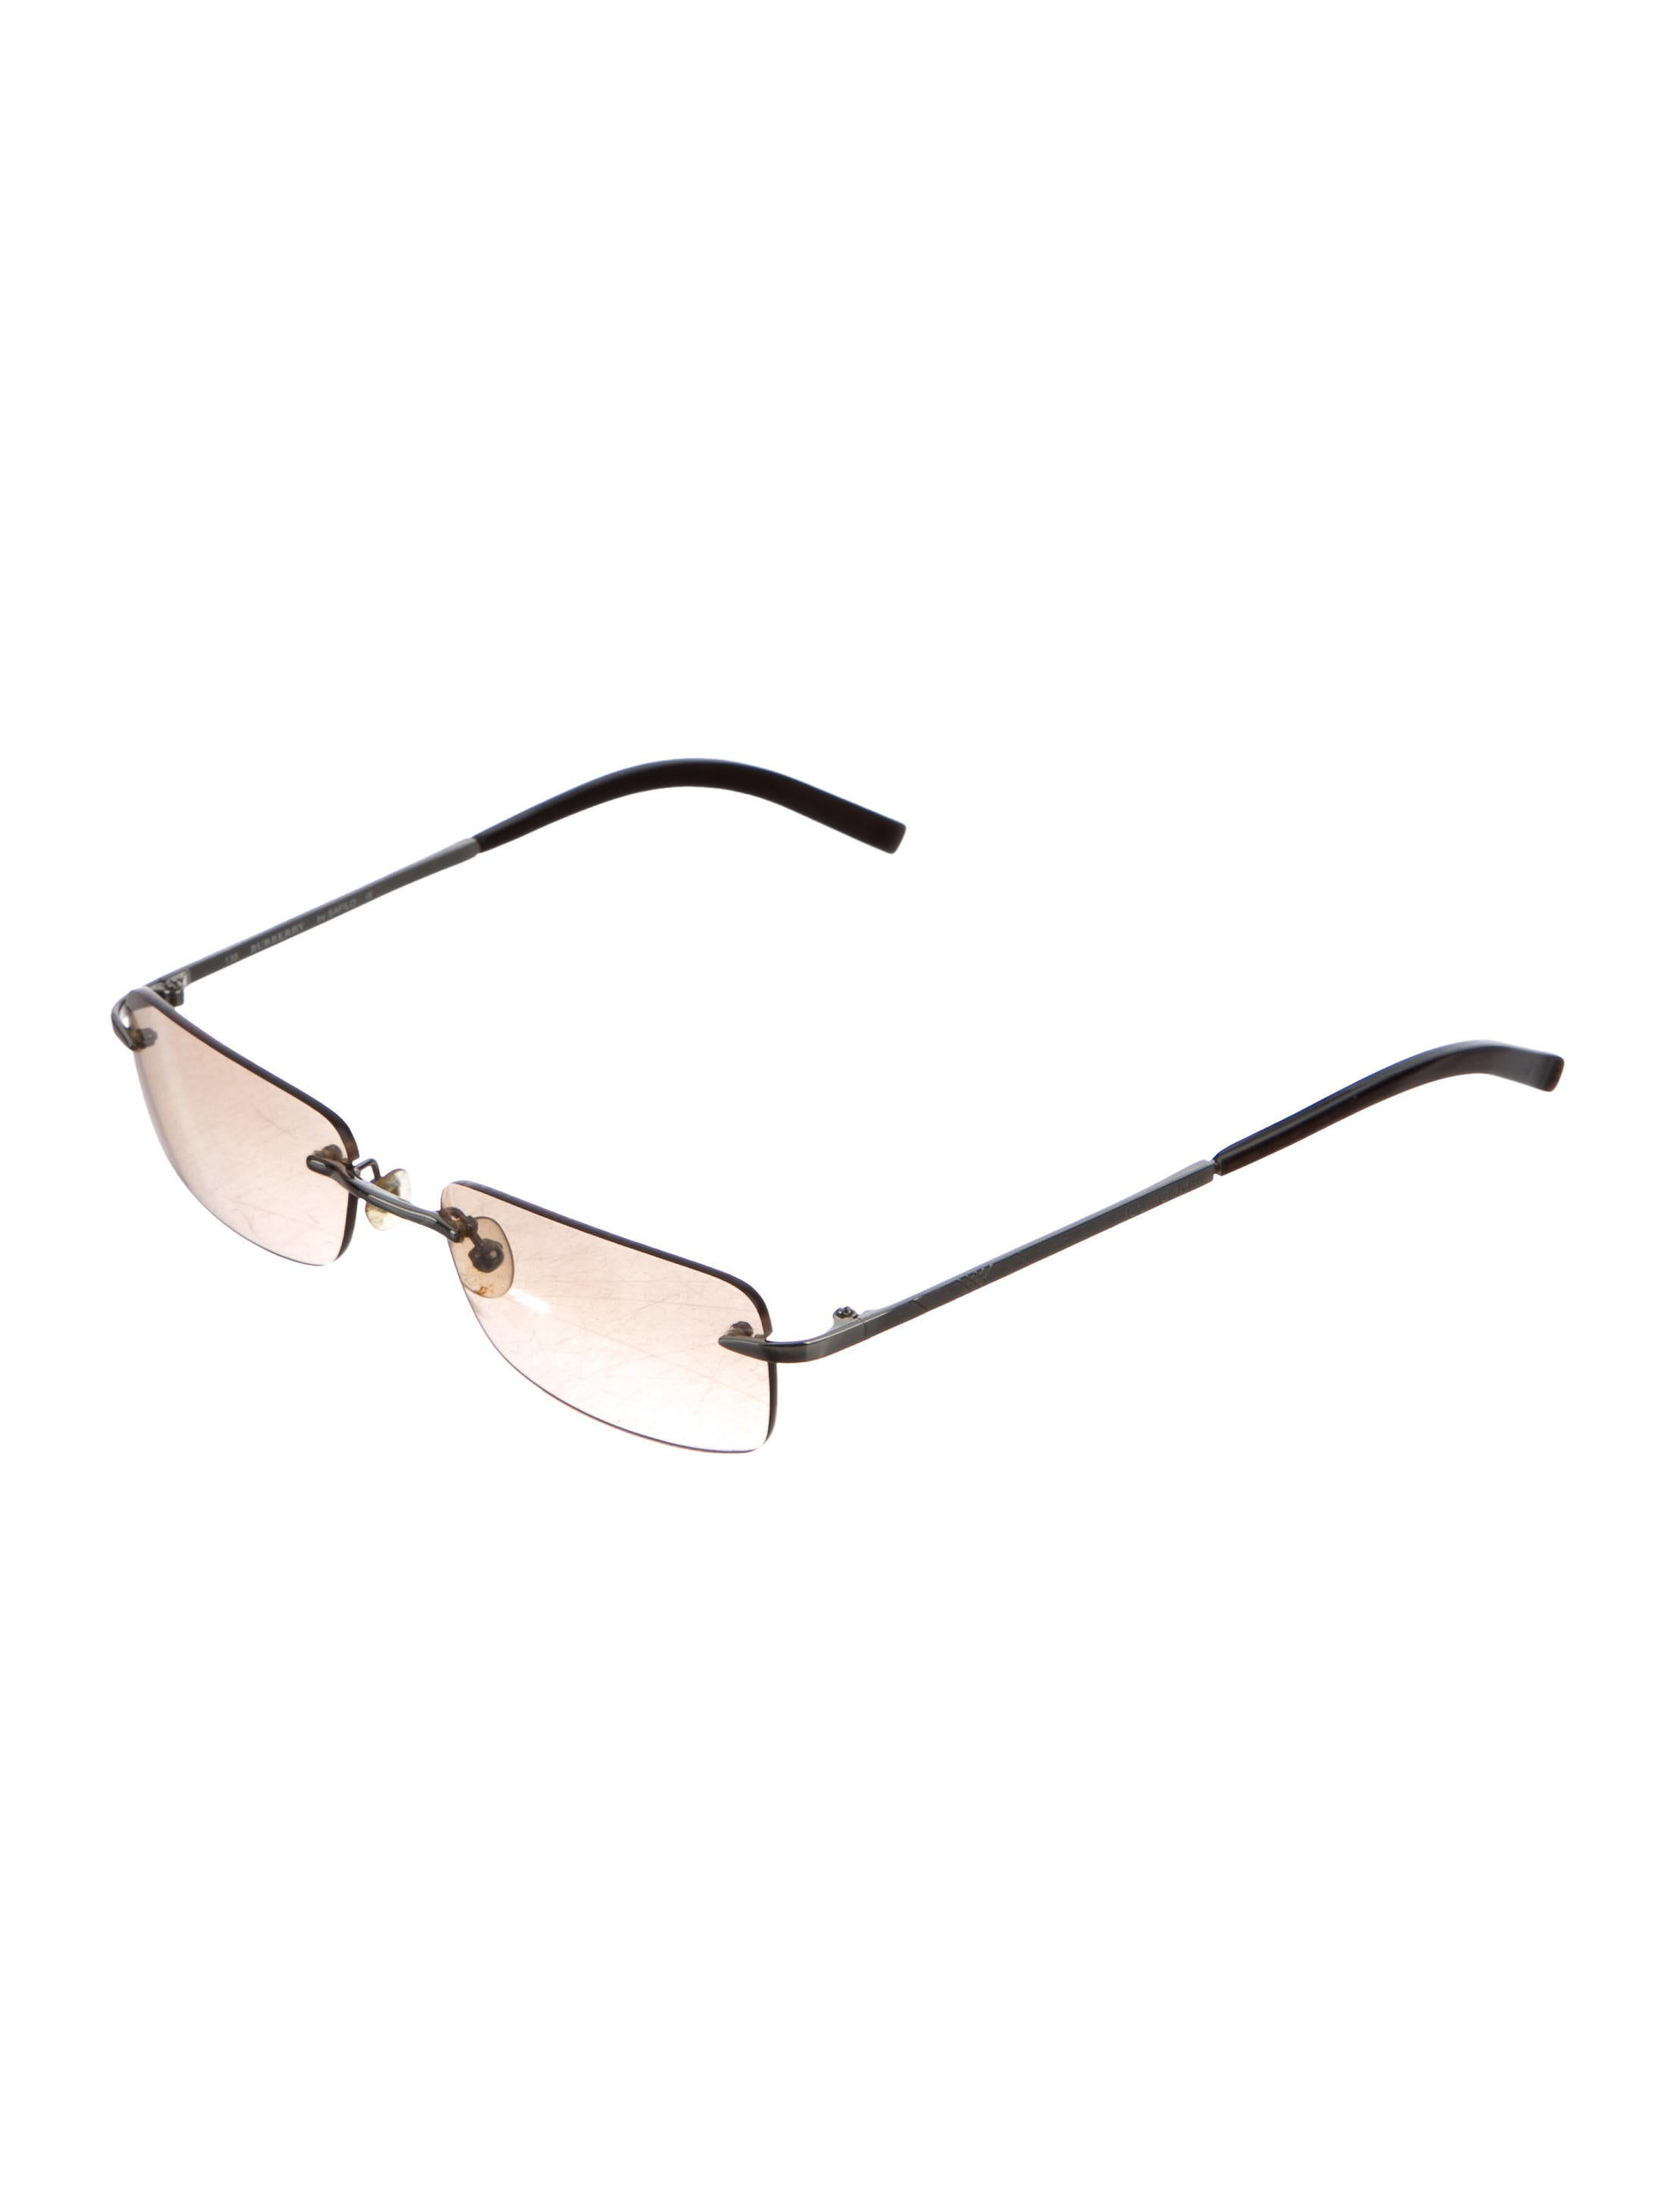 Burberry Rimless Glasses : Burberry Rimless Rectangular Sunglasses - Accessories ...